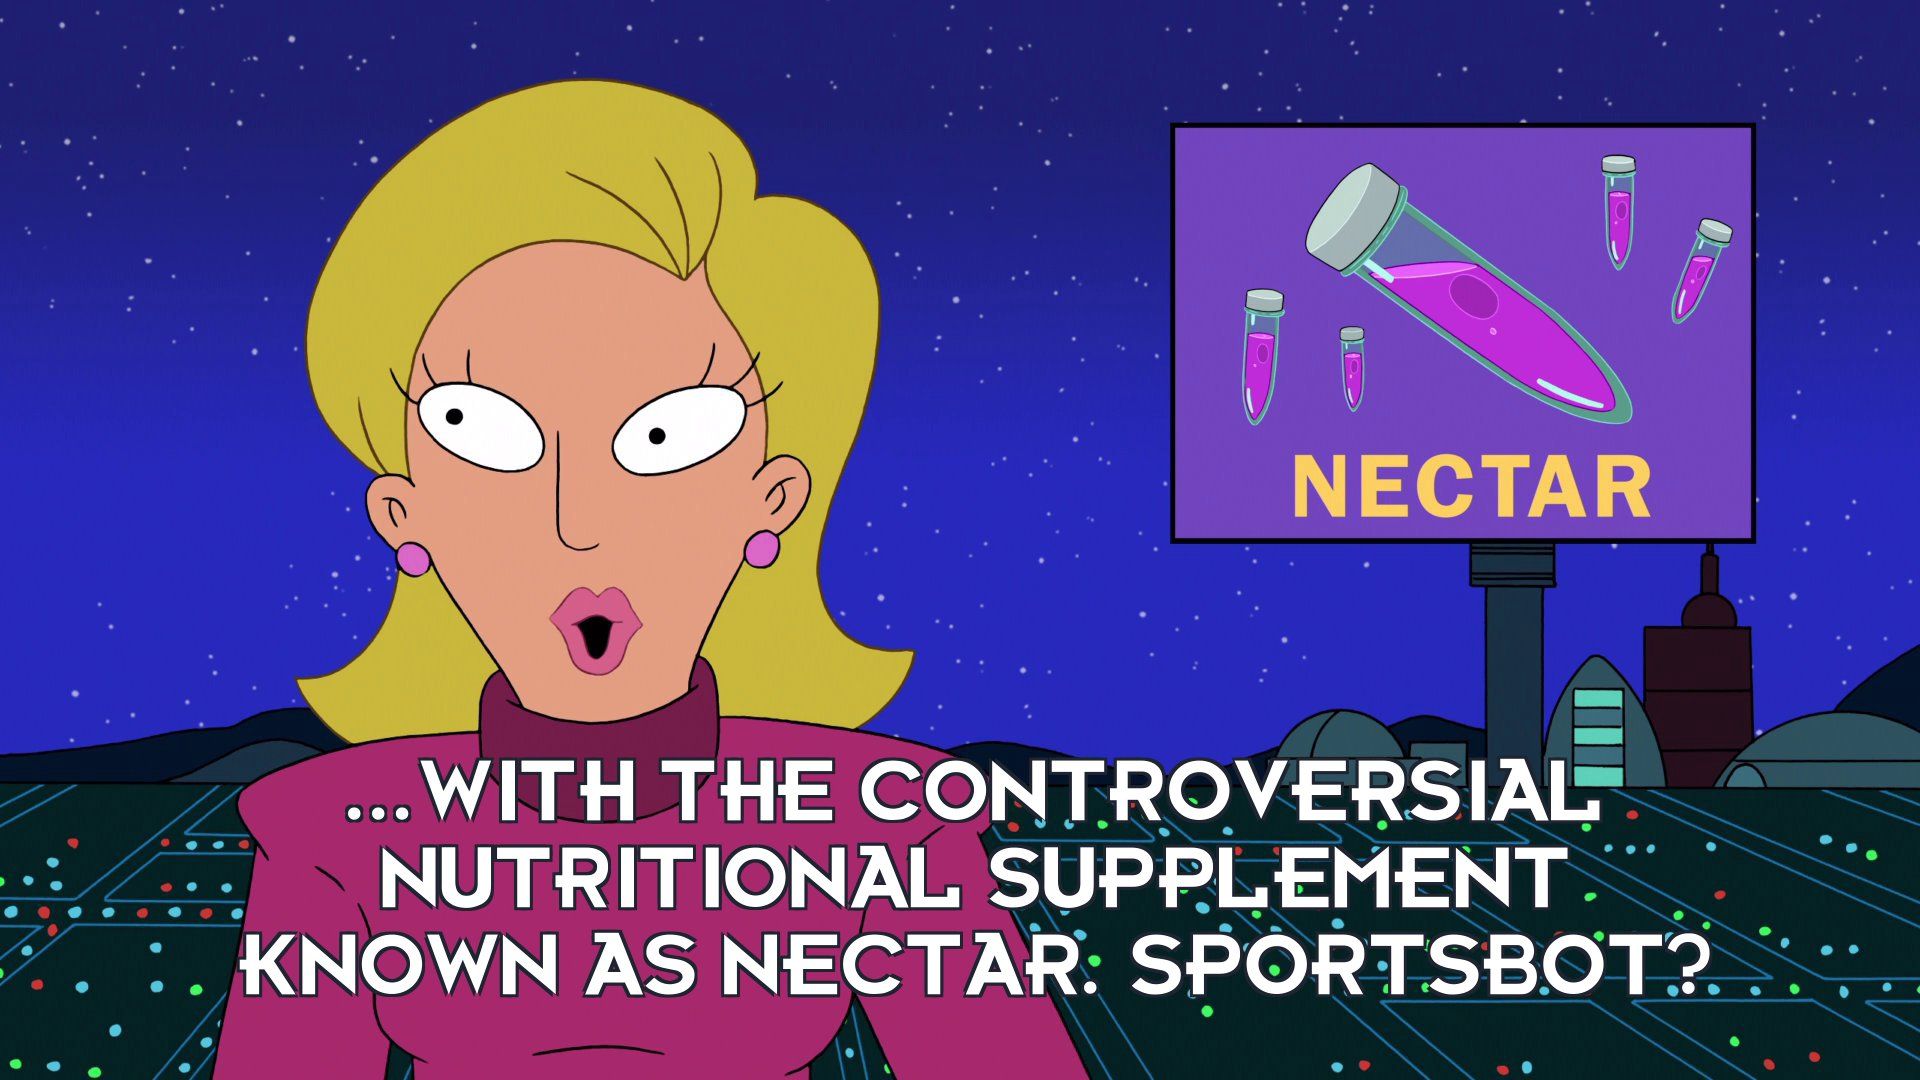 Linda van Schoonhoven: ...with the controversial nutritional supplement known as nectar. Sportsbot?